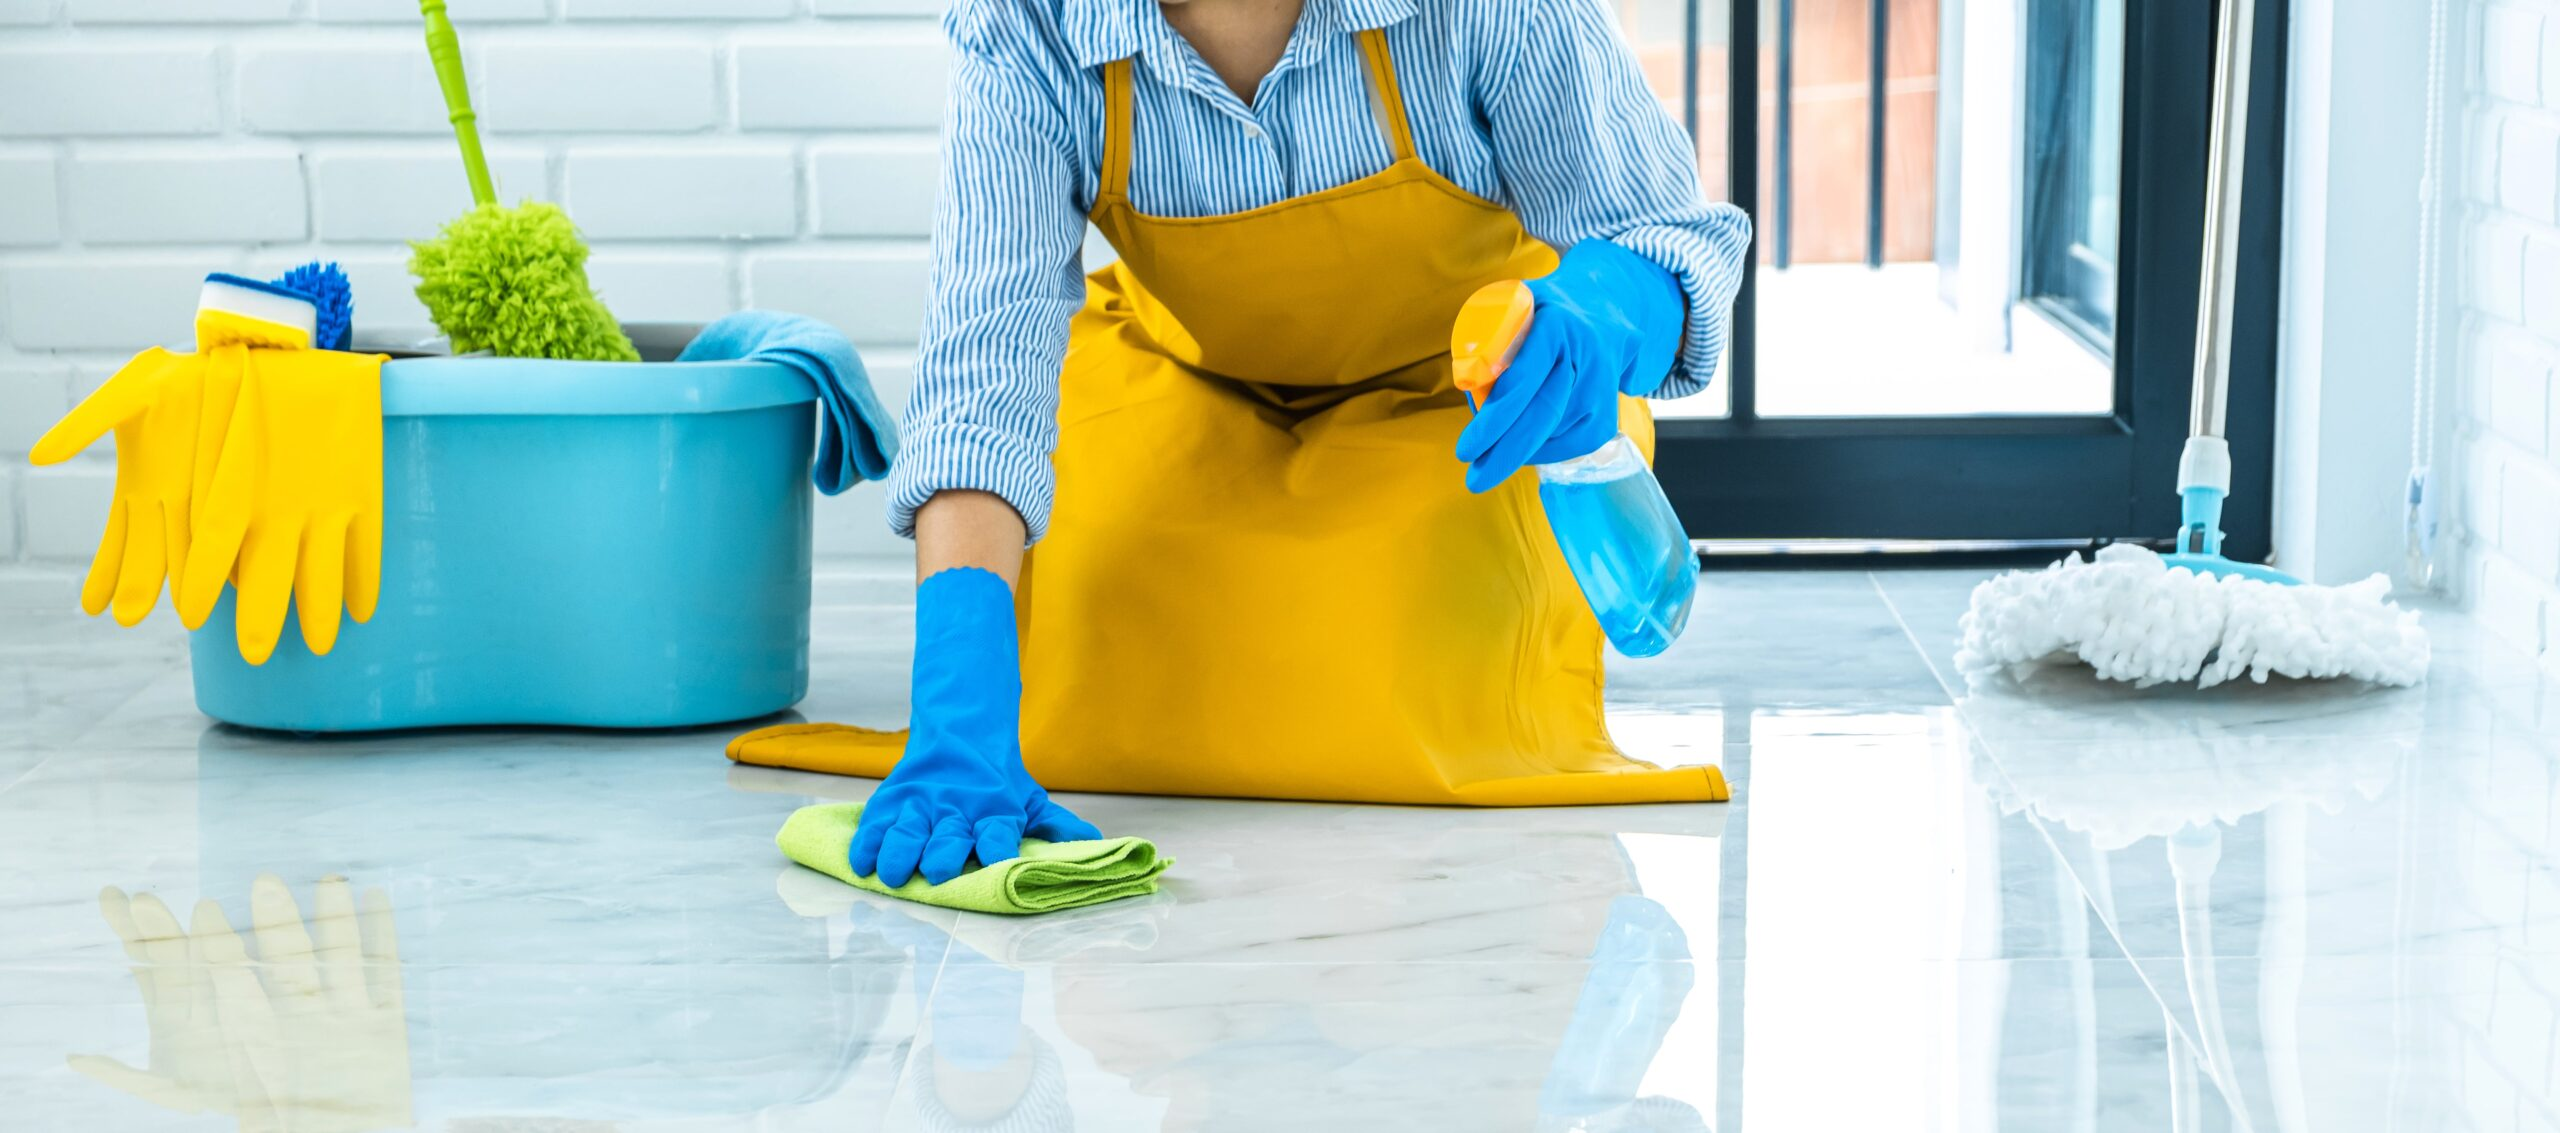 Professional Maid Services